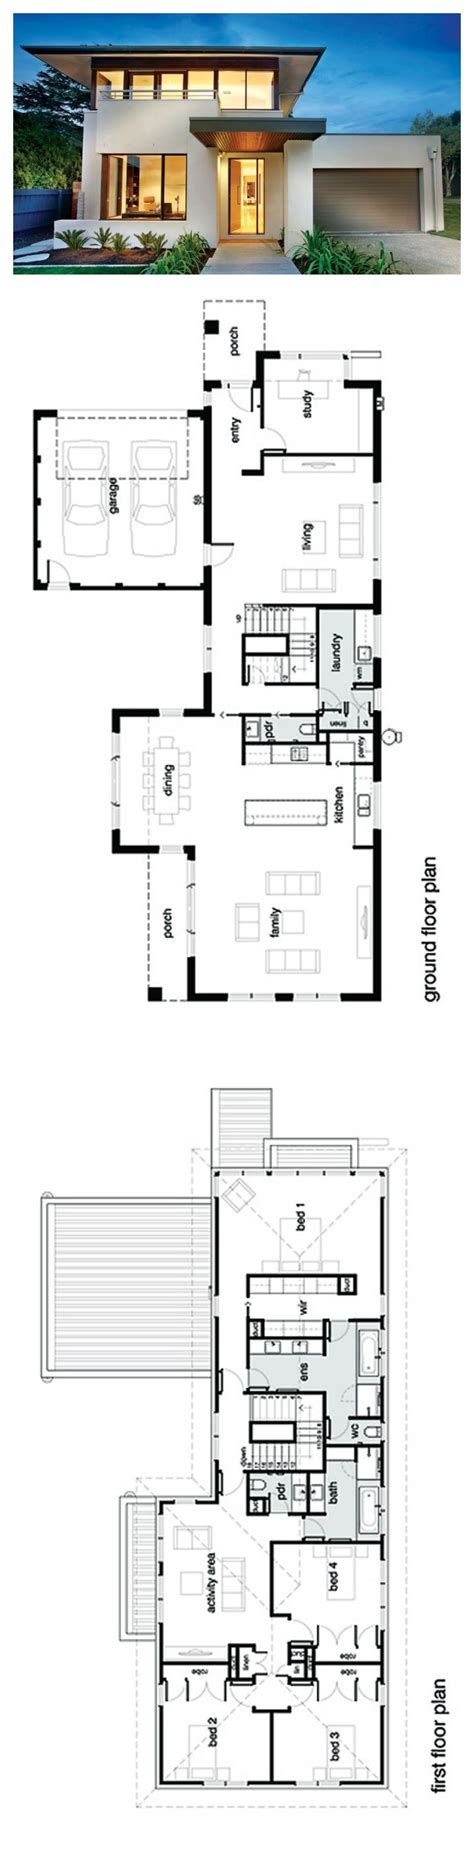 modern mansion floor plans the 25 best ideas about modern house plans on pinterest